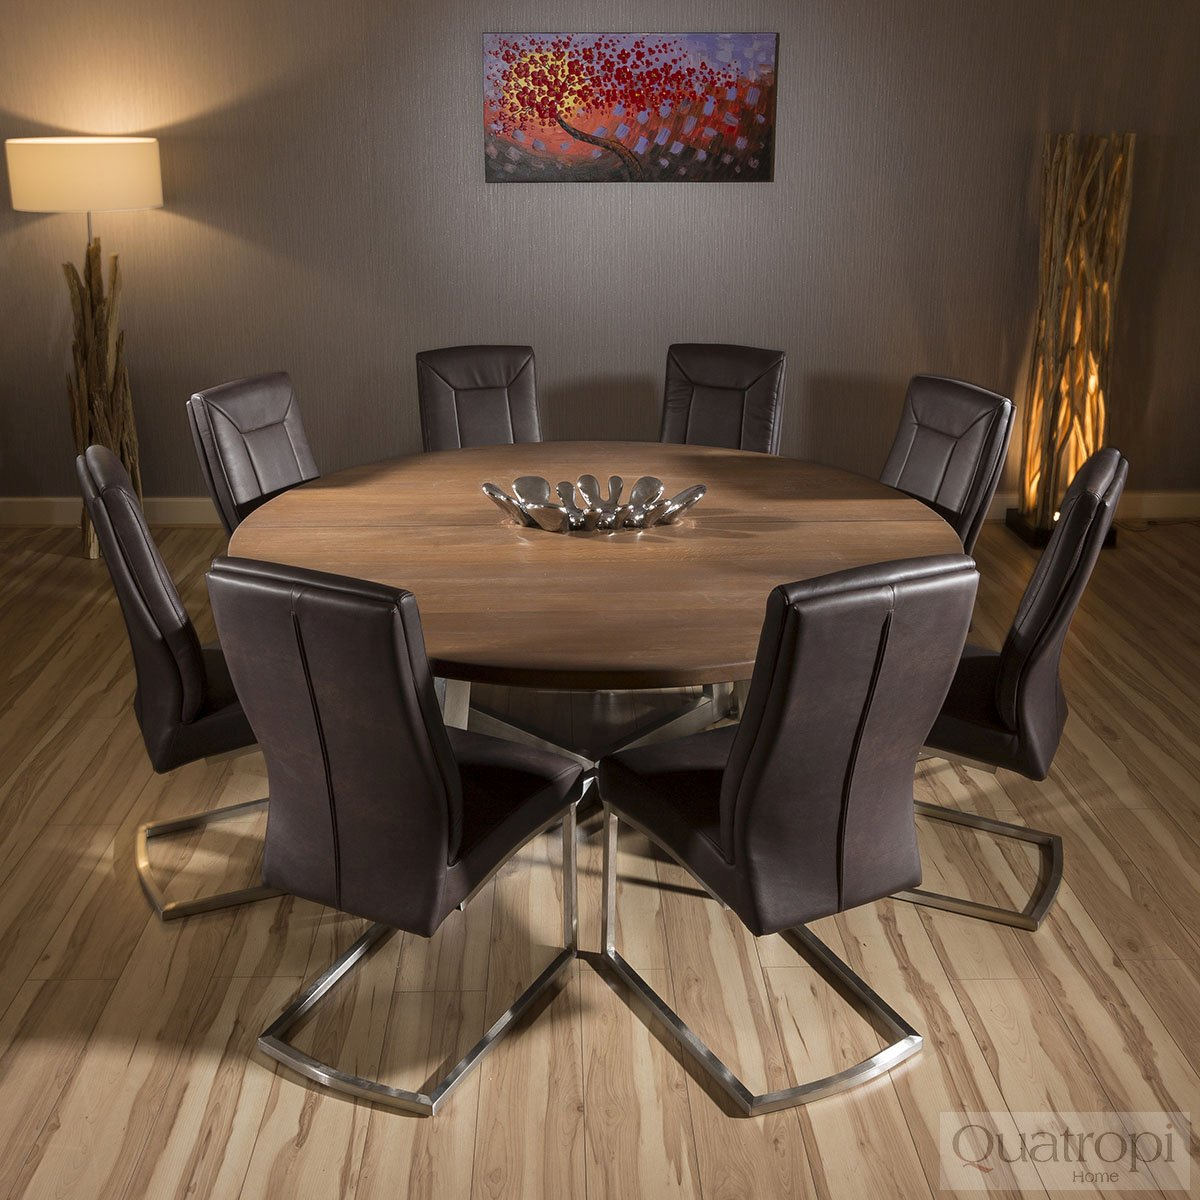 Large Round 1.8mtr Dark Brown Oak Dining Table + 8 Comfy